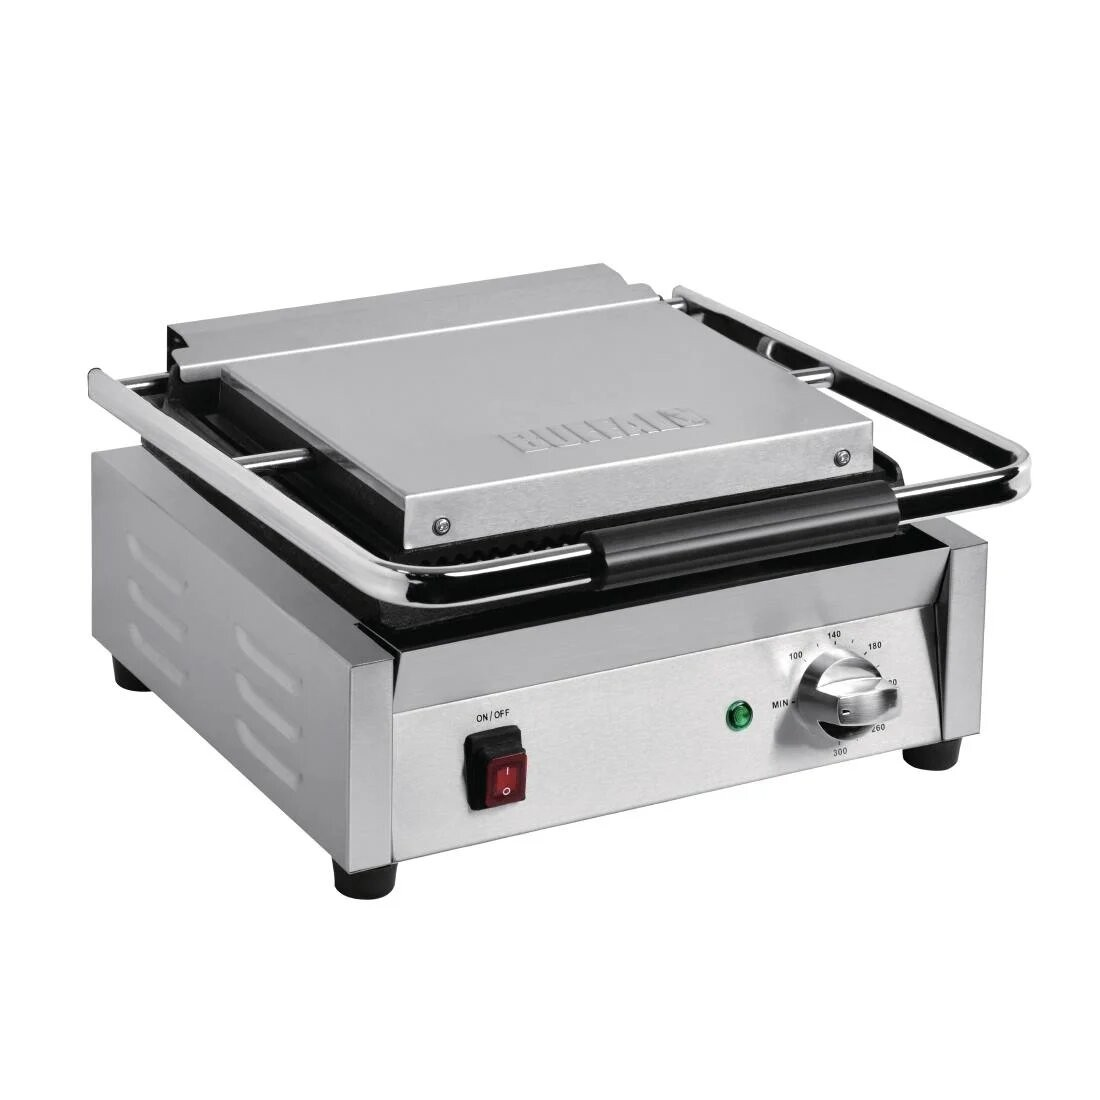 Buffalo DY997 Bistro Large Contact Grill